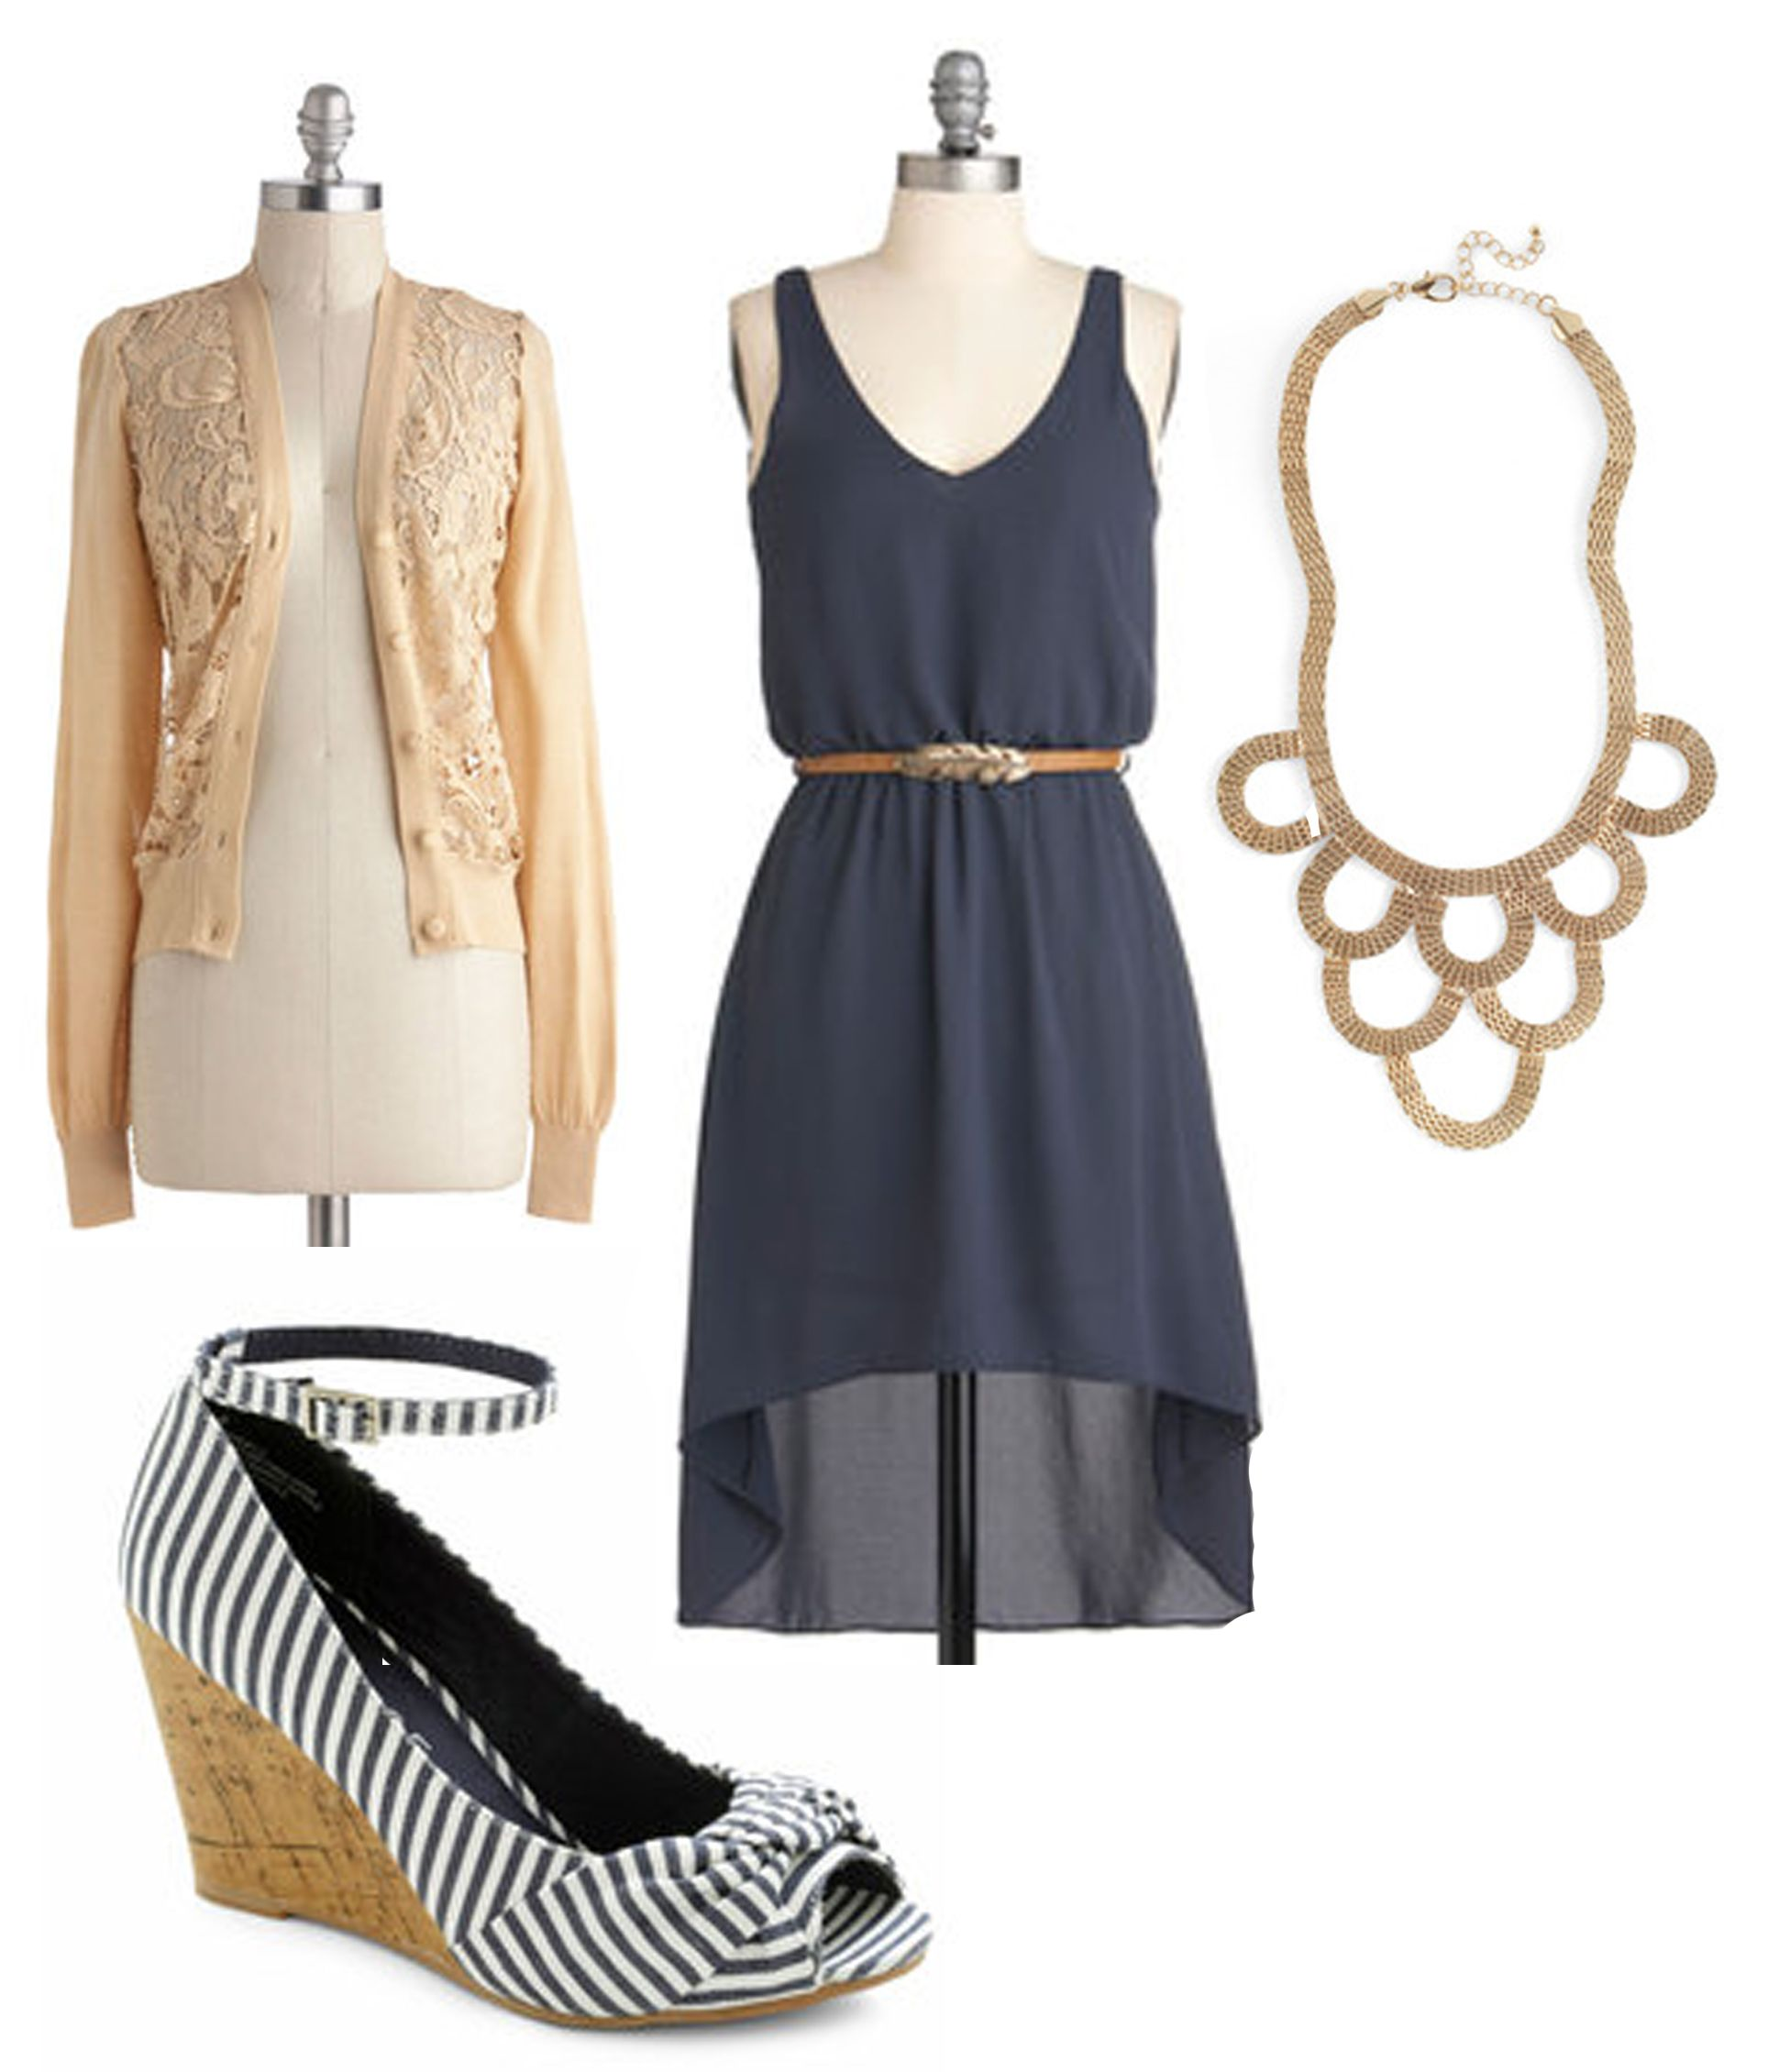 wedding outfitminus the shoes Casual wedding outfit